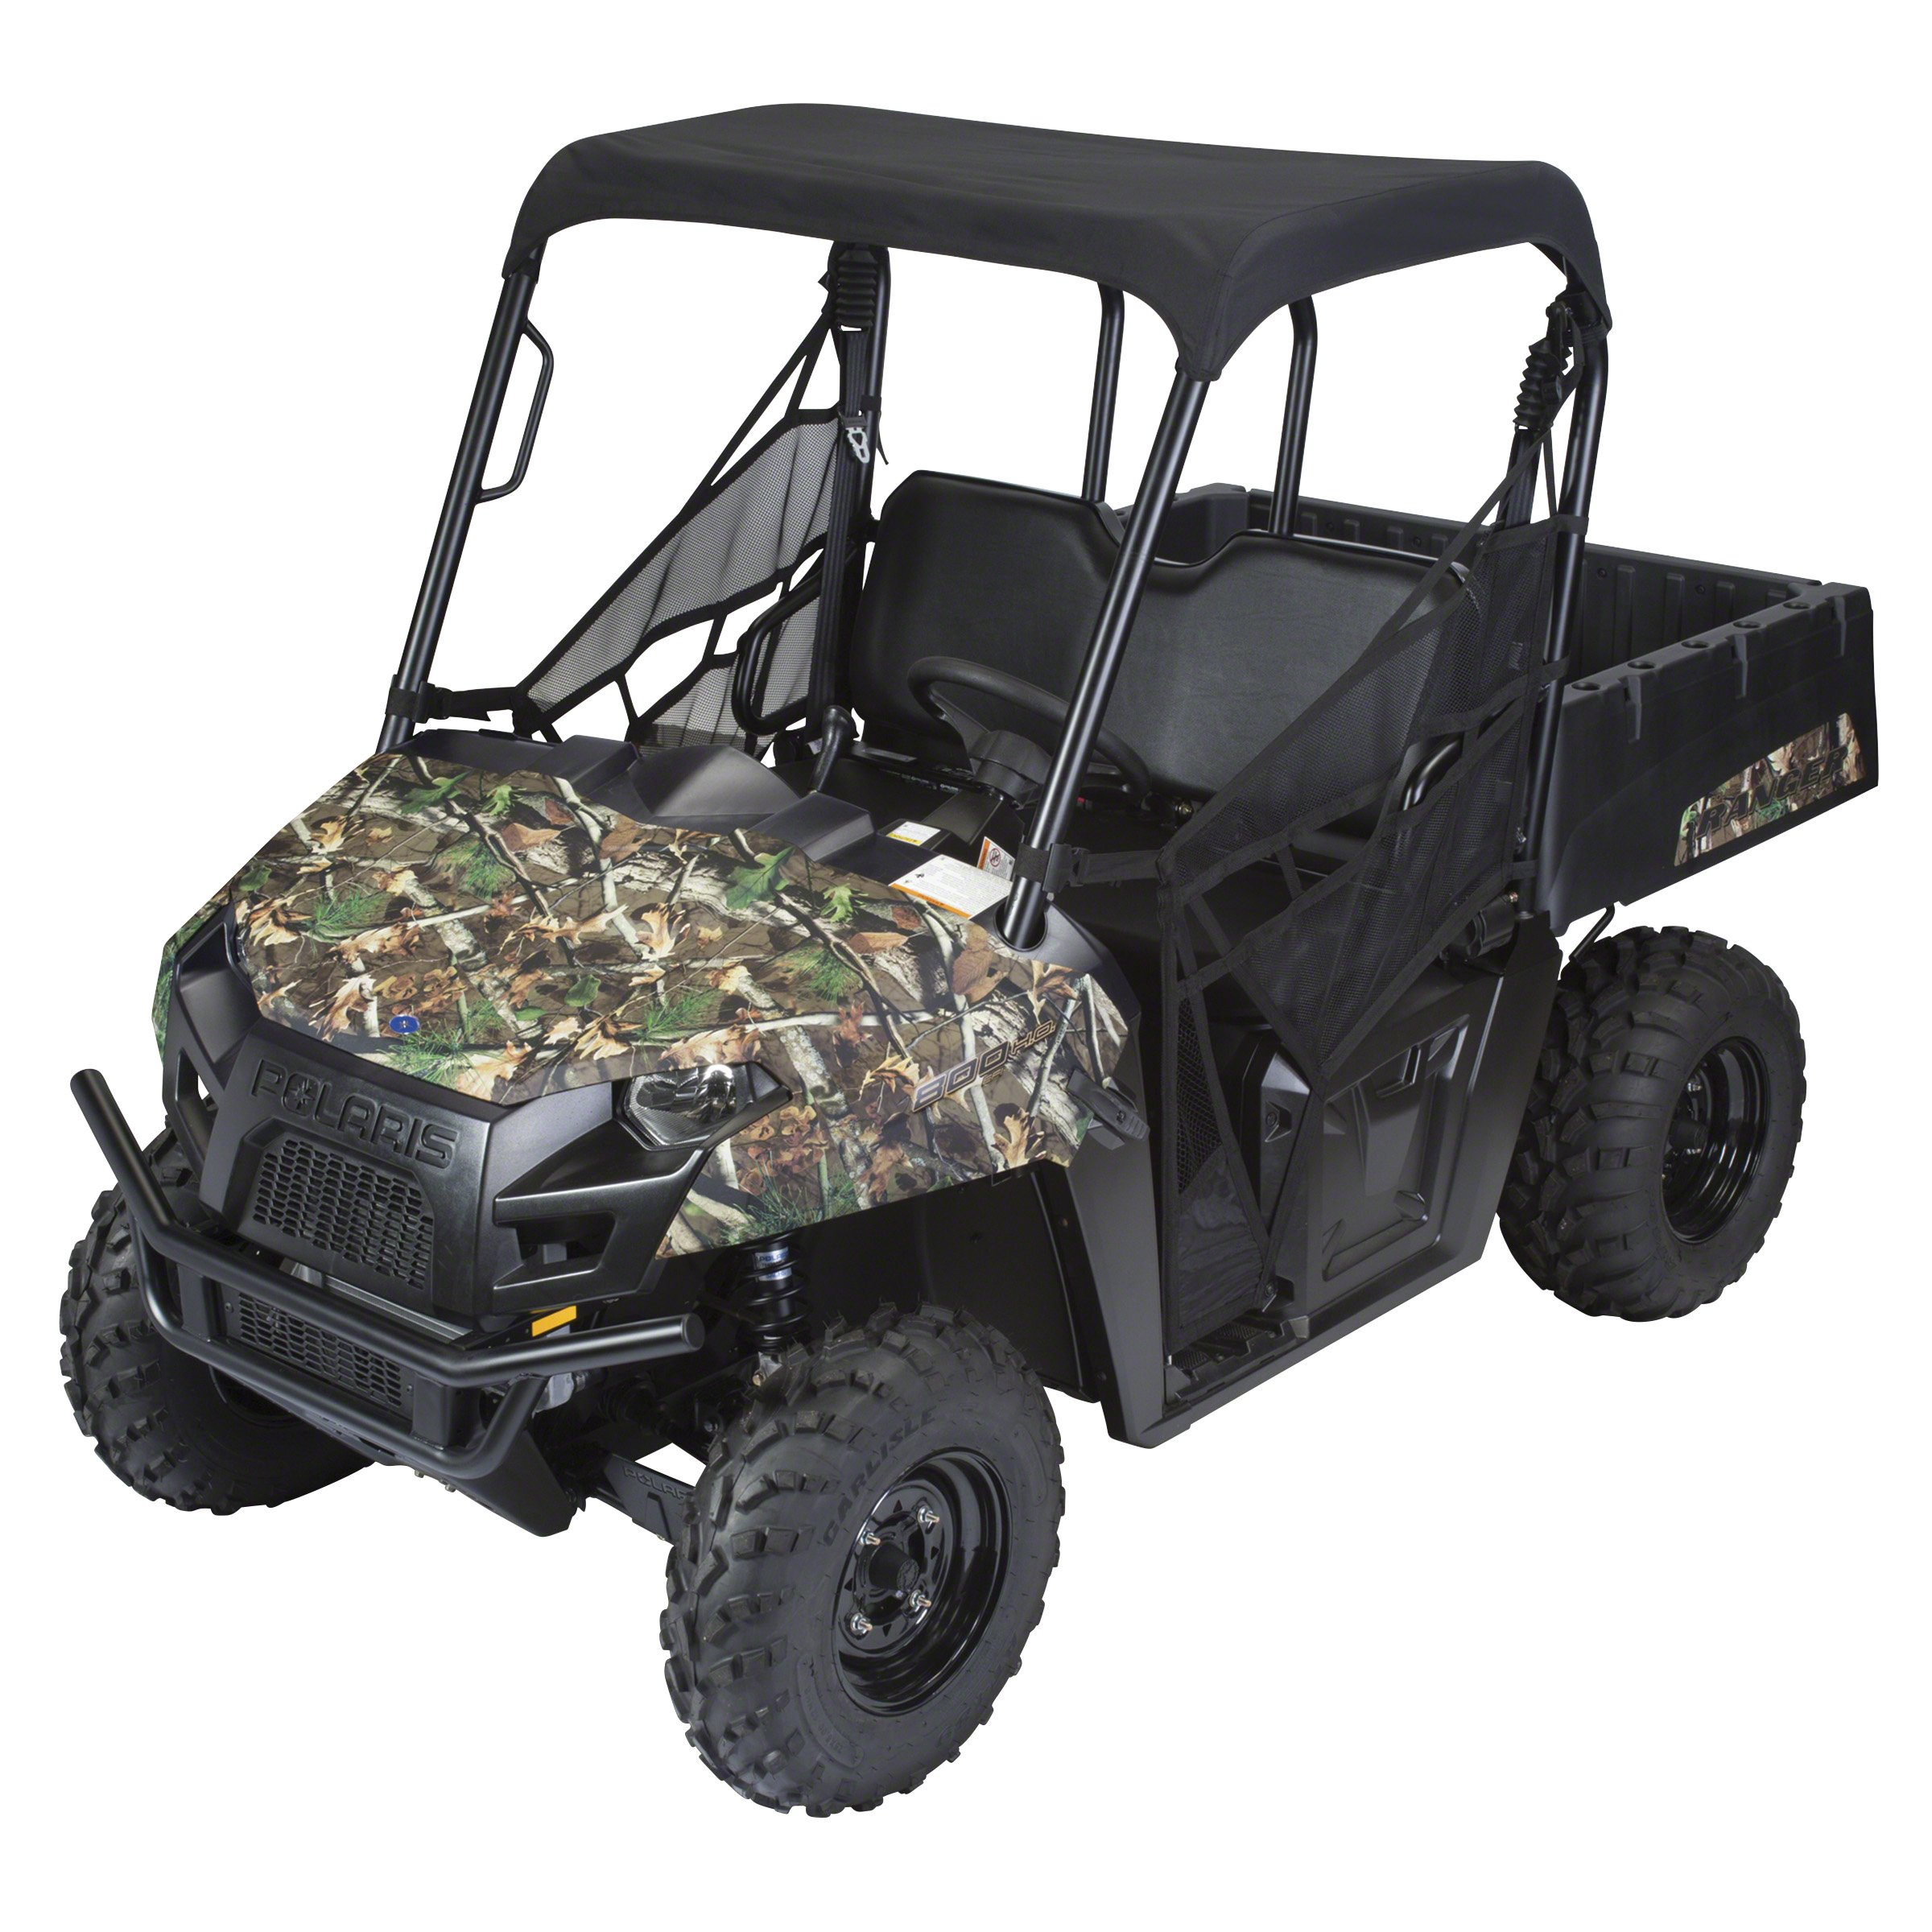 Classic Accessories 18-084-010401-00 Black QuadGear UTV Roll Cage Top by Classic Accessories